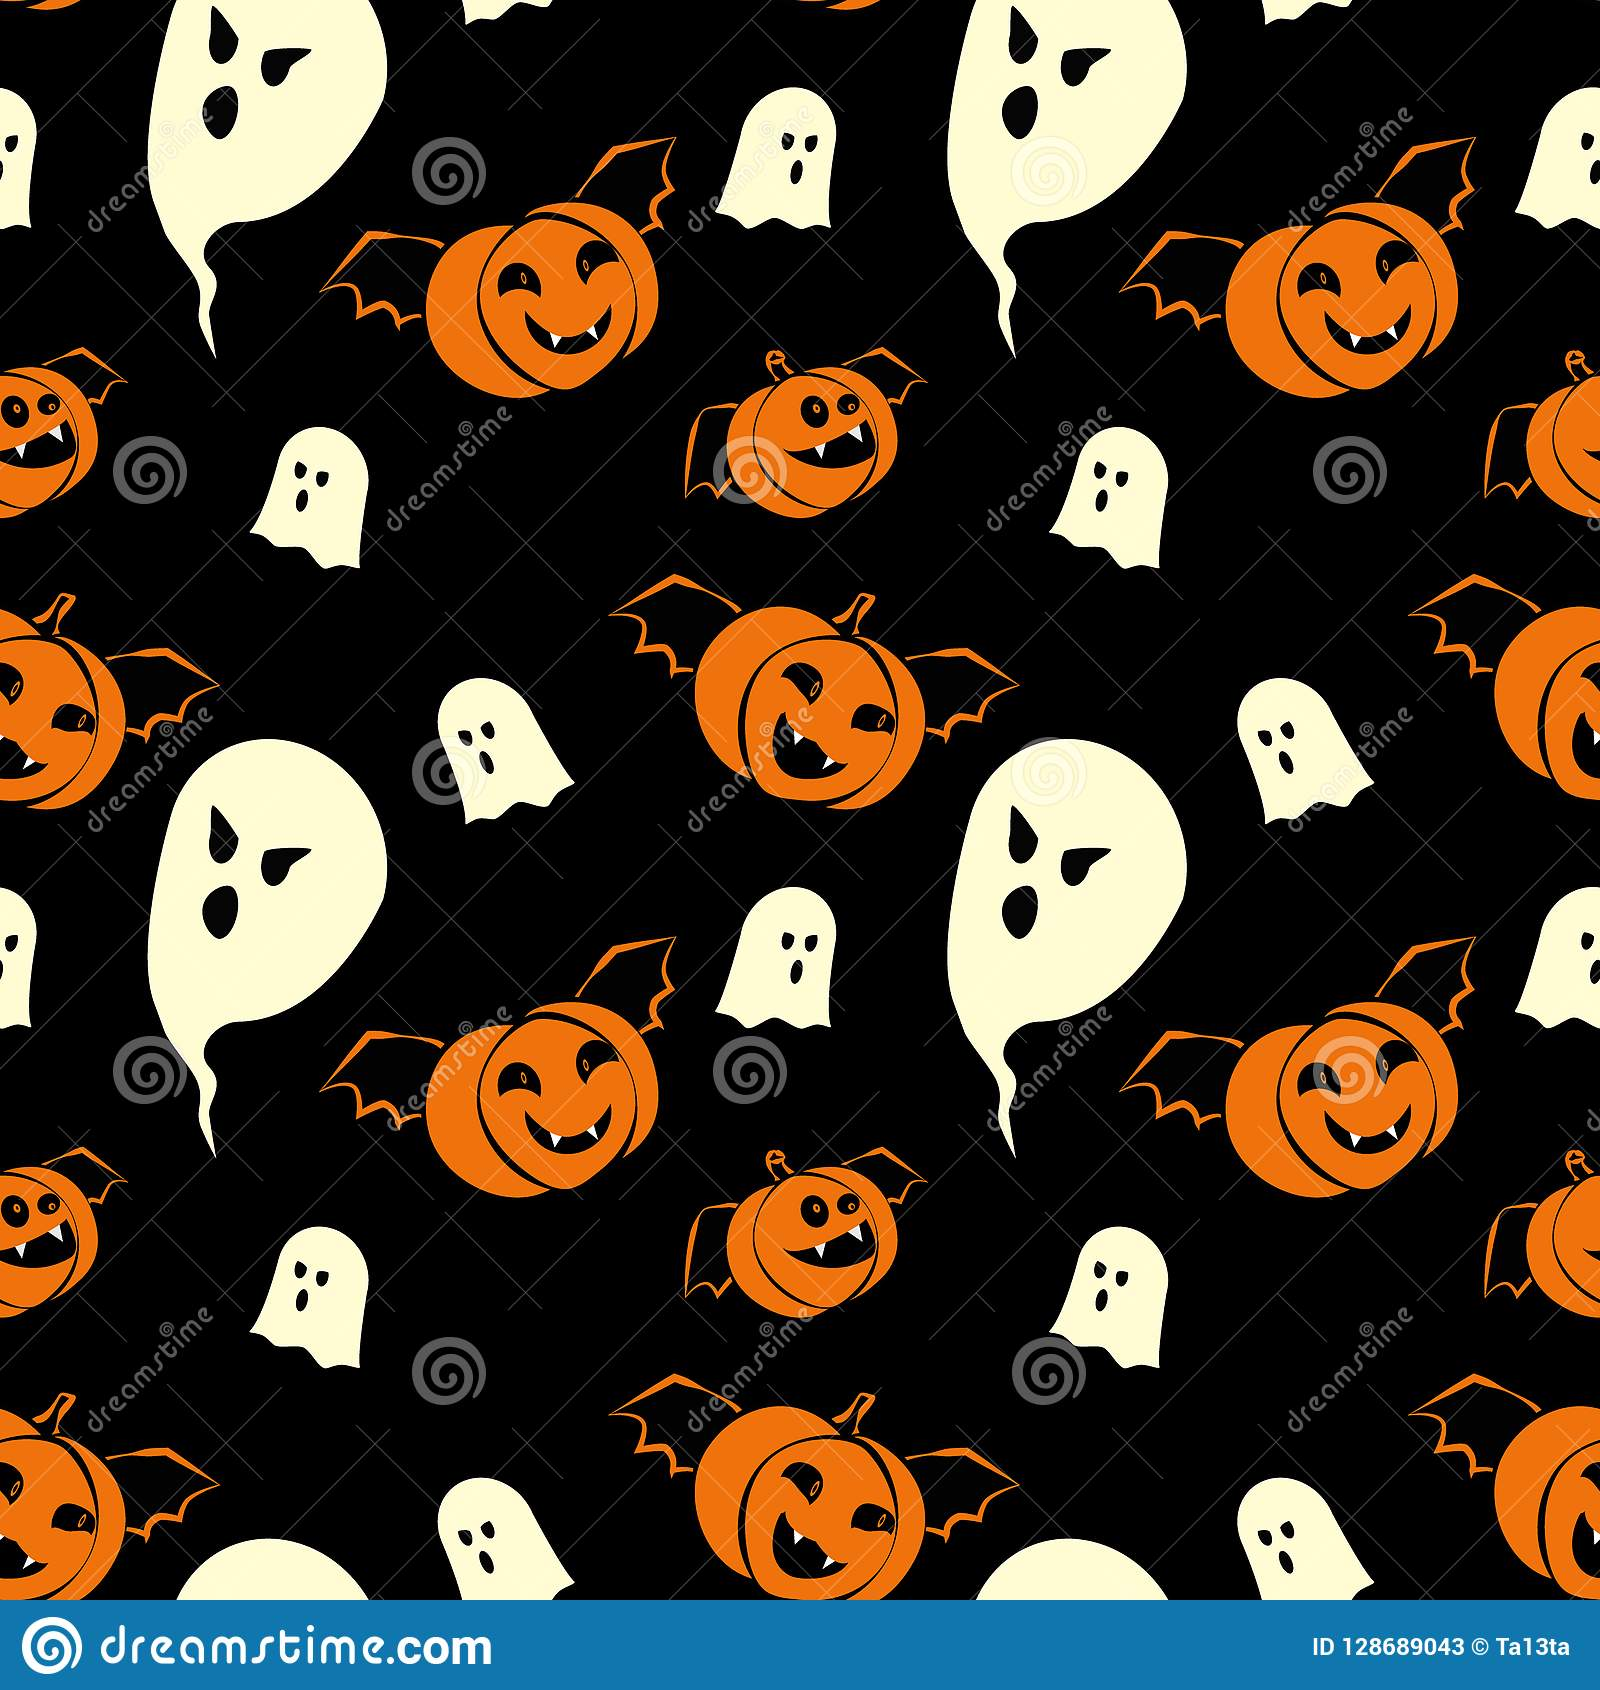 Halloween Seamless Pattern Design With Ghosts And Pumpkins